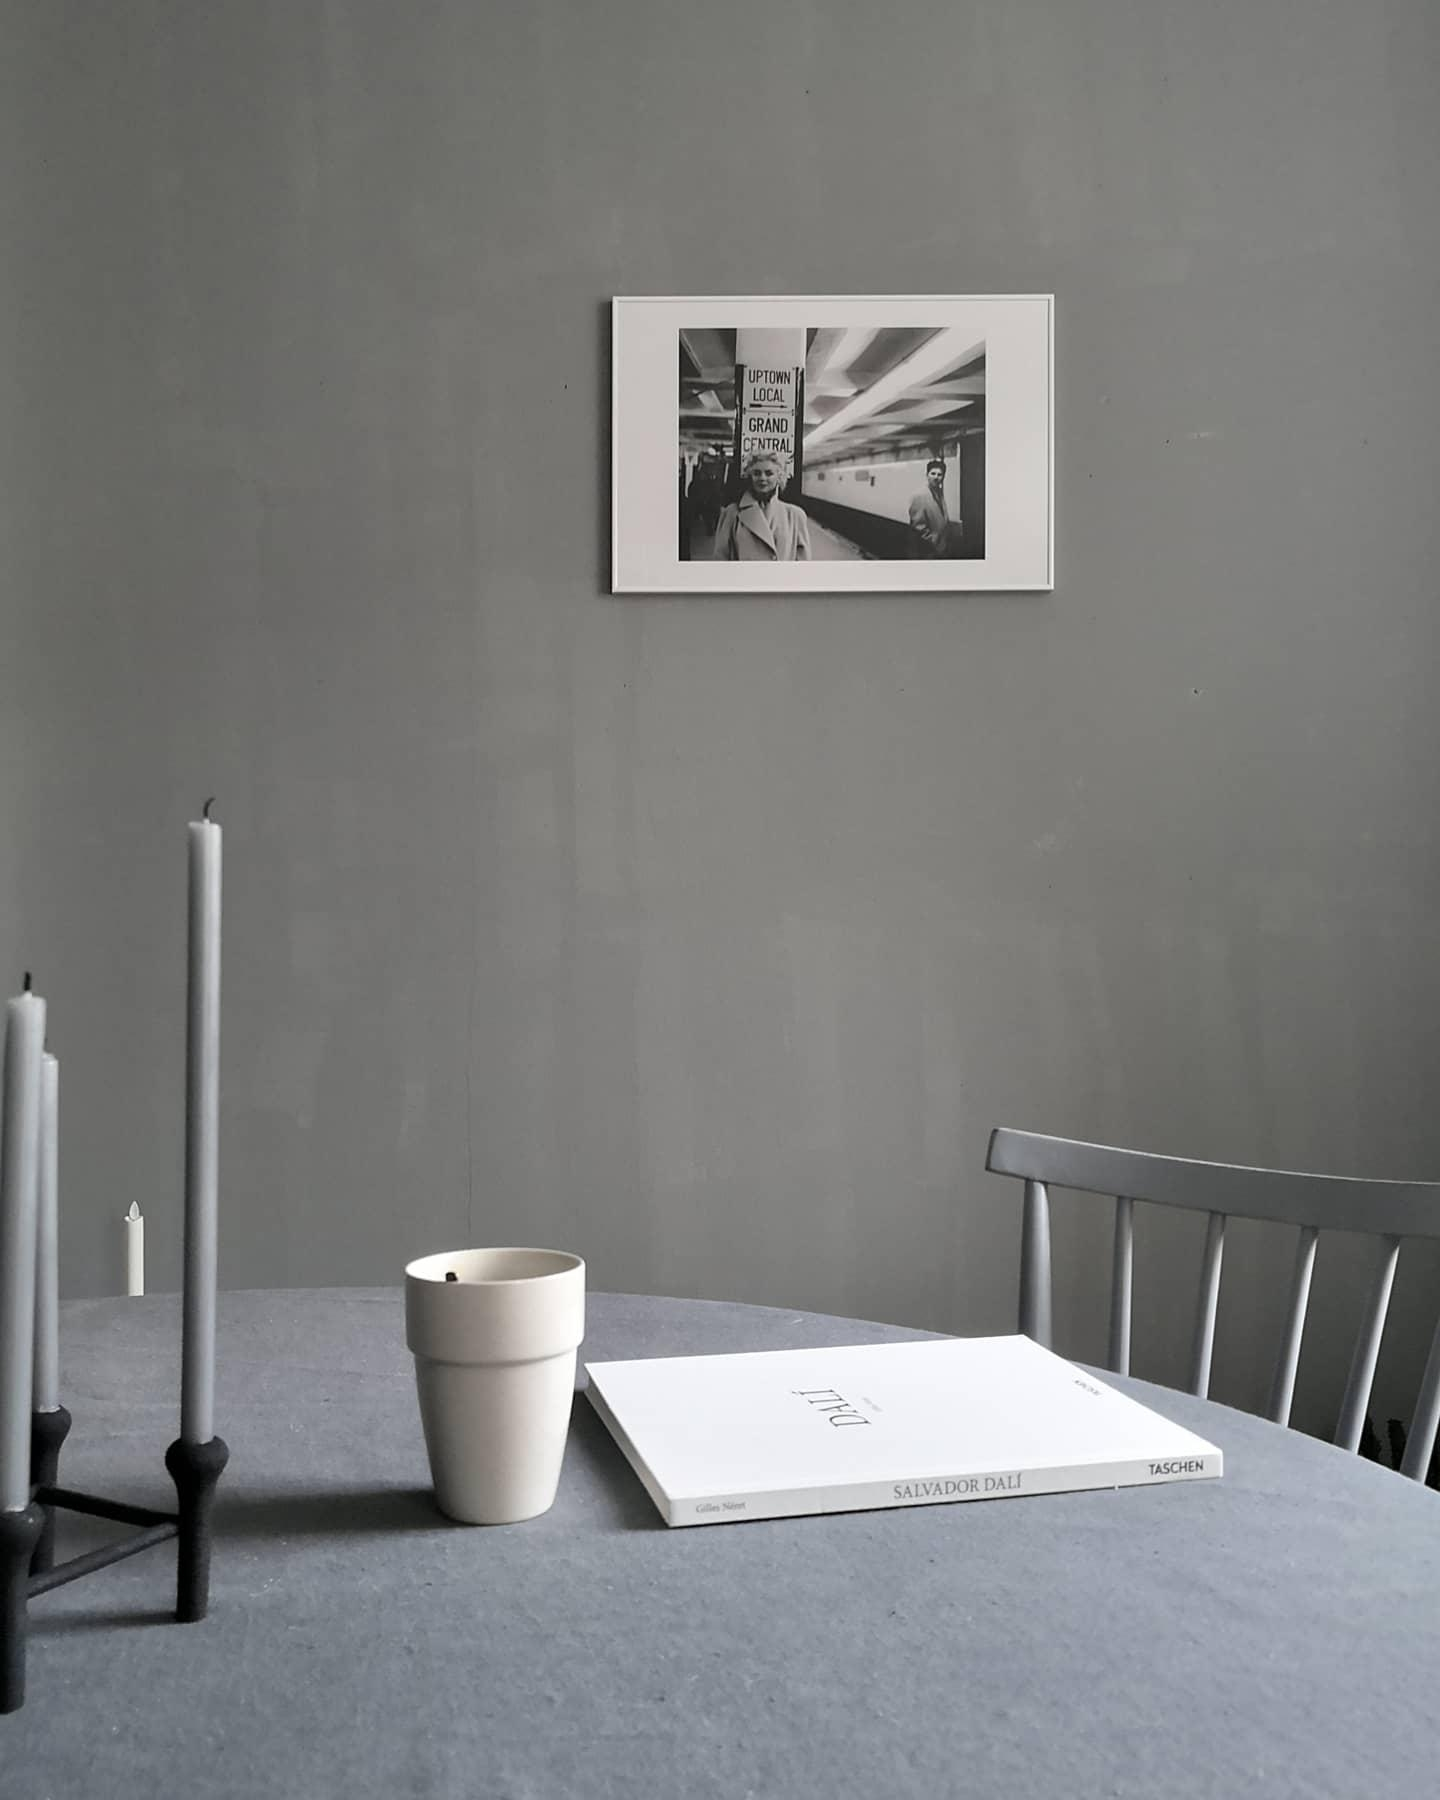 #minimalist #couchliebt #nordic #scandi #tablesetting